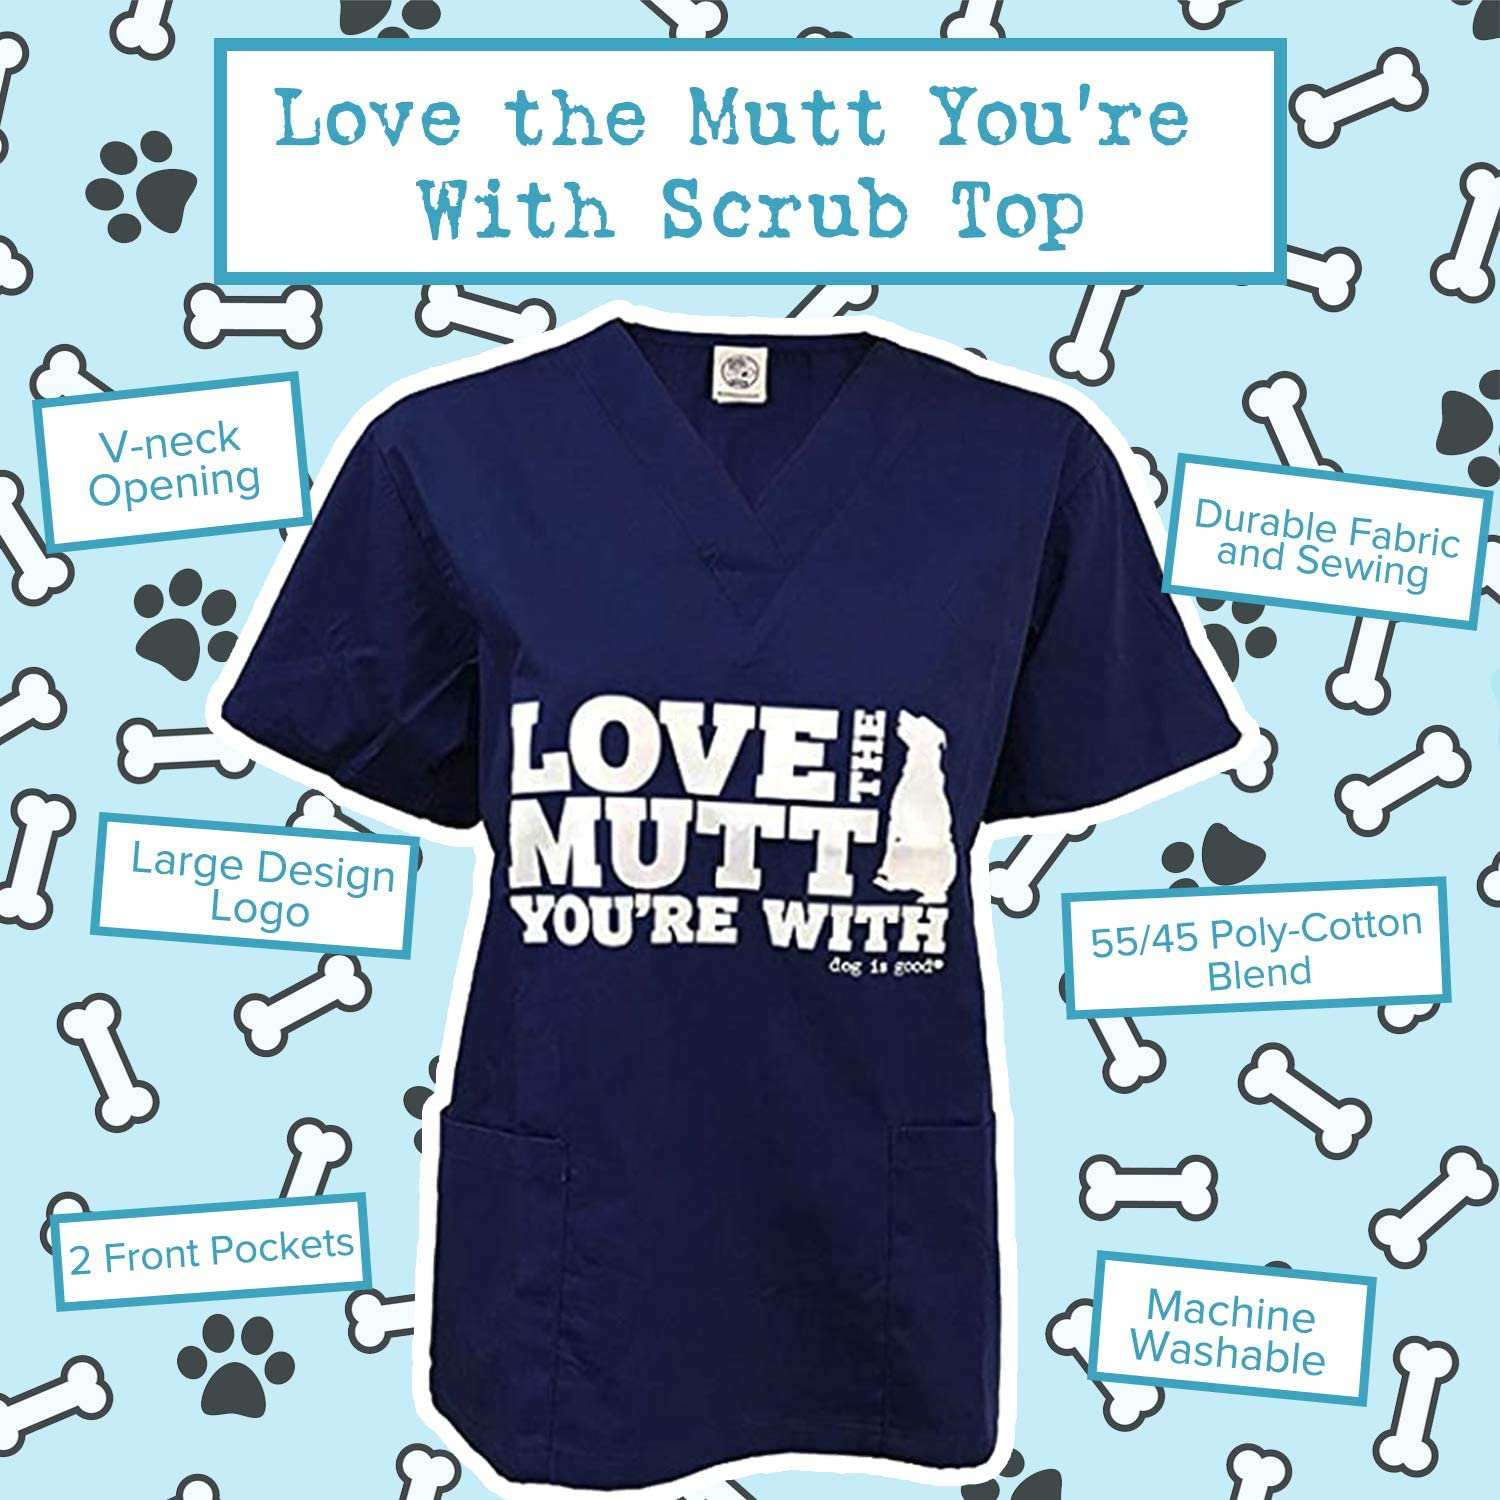 Great Gift Dog Lovers Made with Premium Materials for Men and Women Dog is Good Scrub Top Love The Mutt Youre with